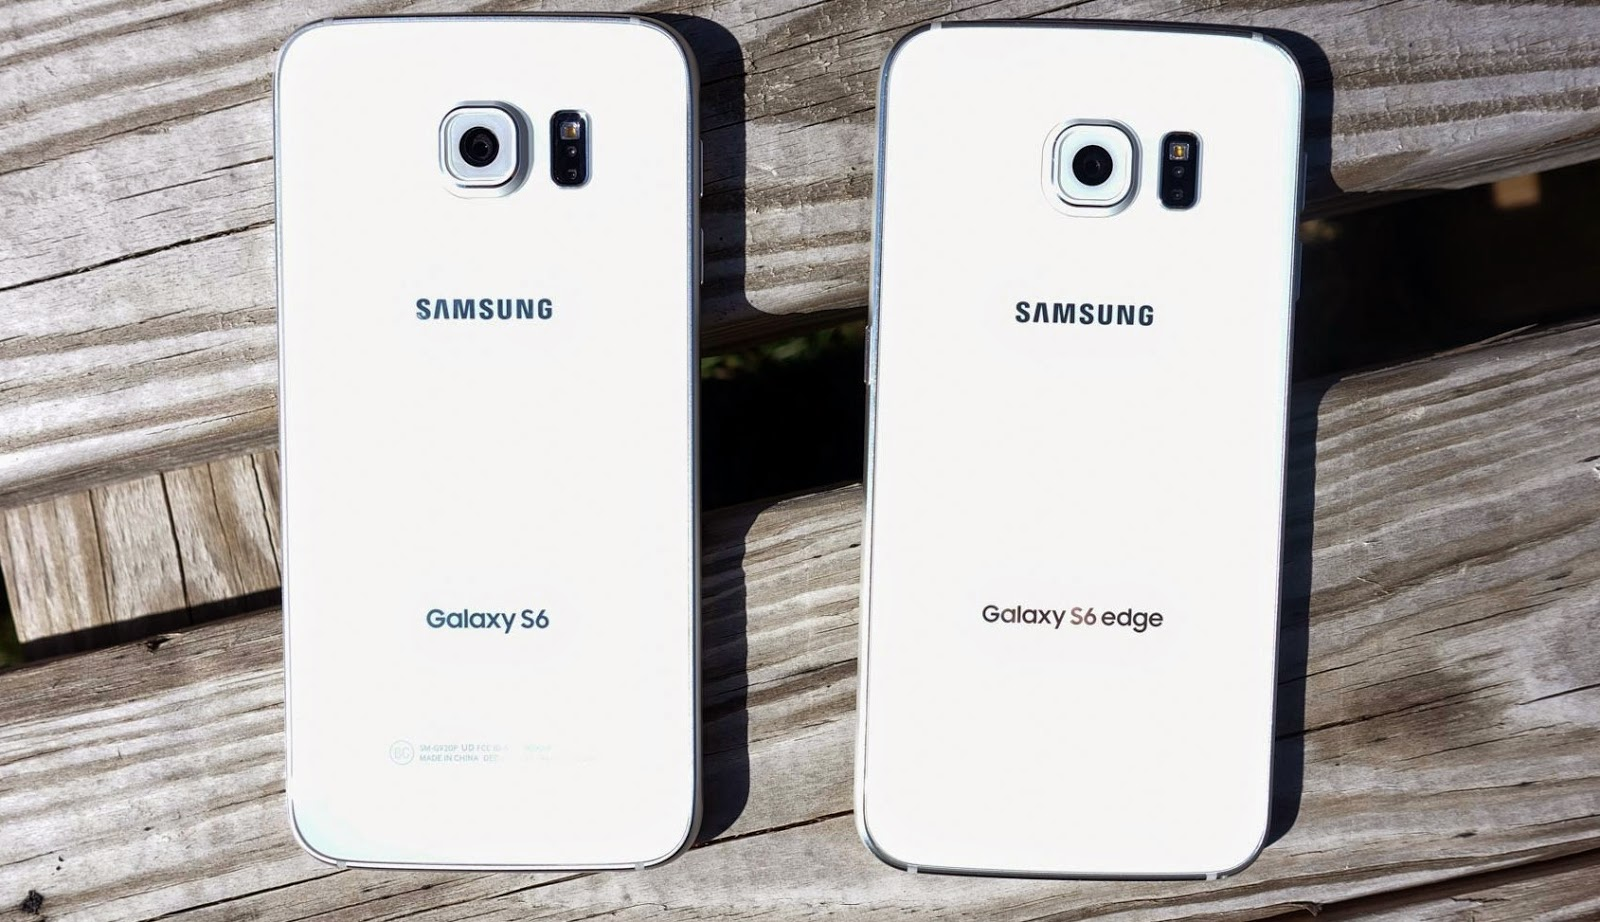 Galaxy s6 capacitive buttons the android soul - Samsung Also Gave Its Attention Under The Hood Keeping A Zippy New Exynos 7420 An Octa Core 64 Bit Samsung S Own Processor With The Benchmarks To Compete